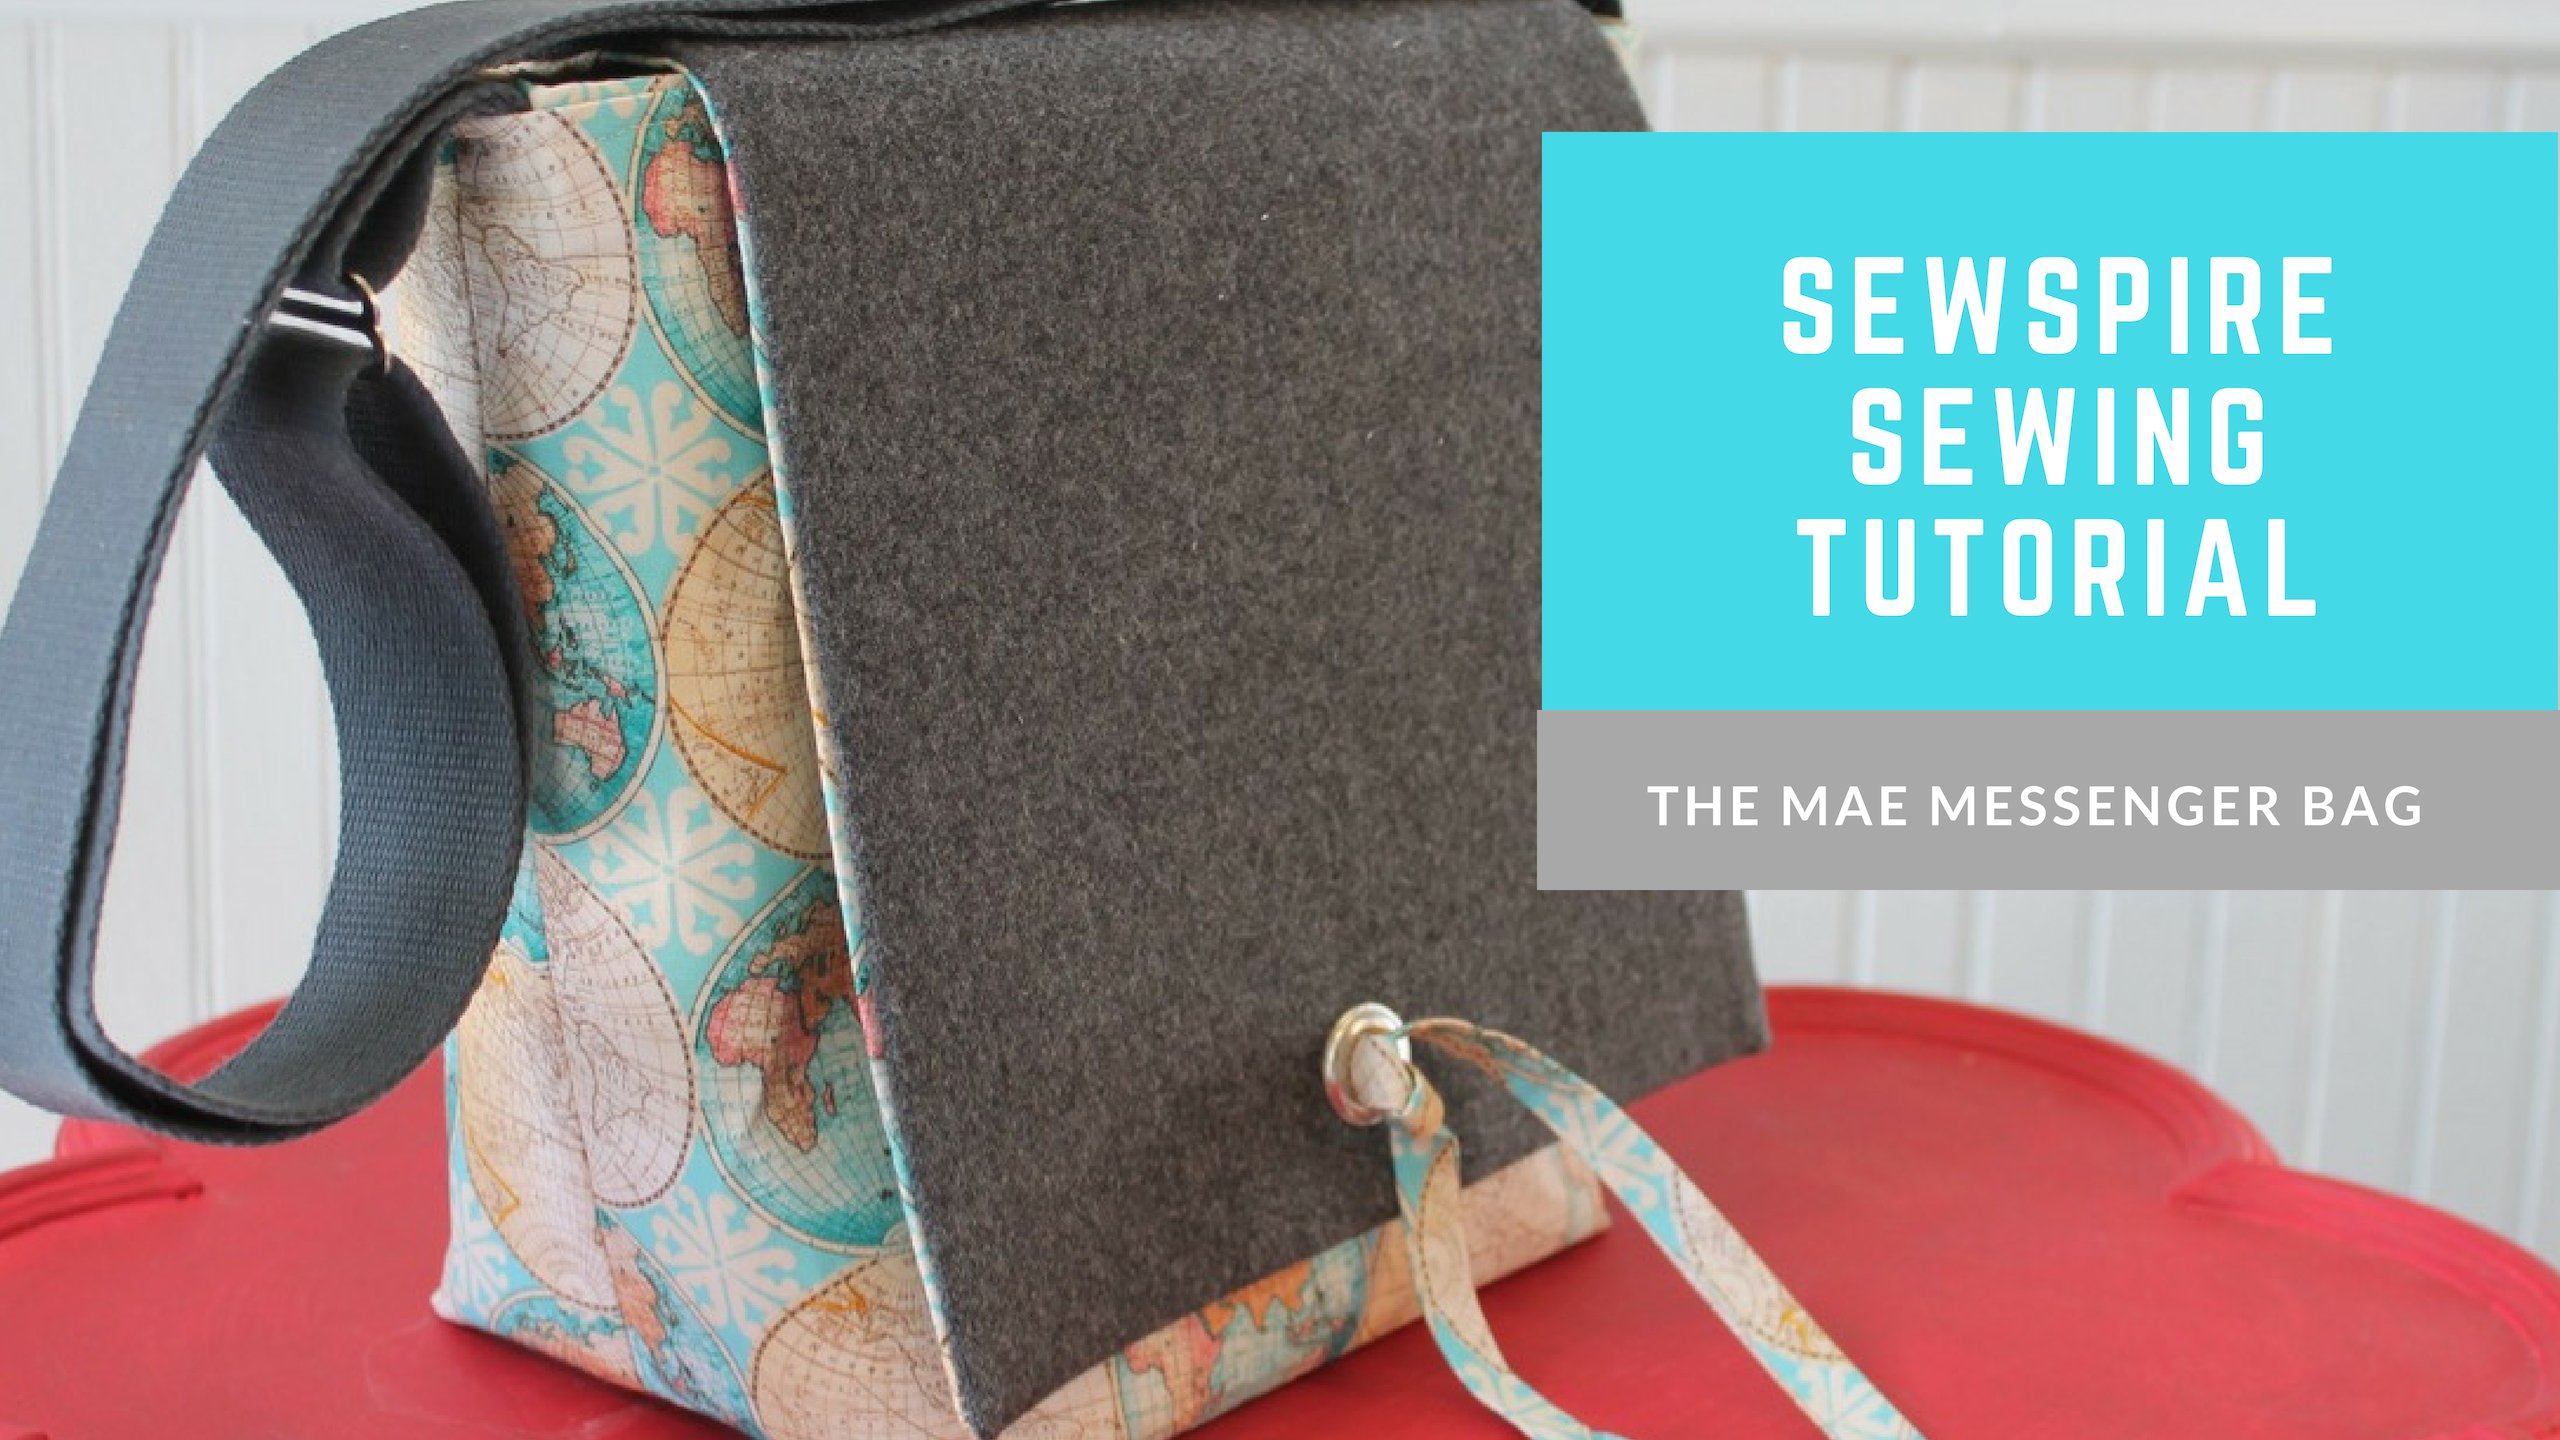 How to sew The Mae Messenger Tote Bag by Sewspire